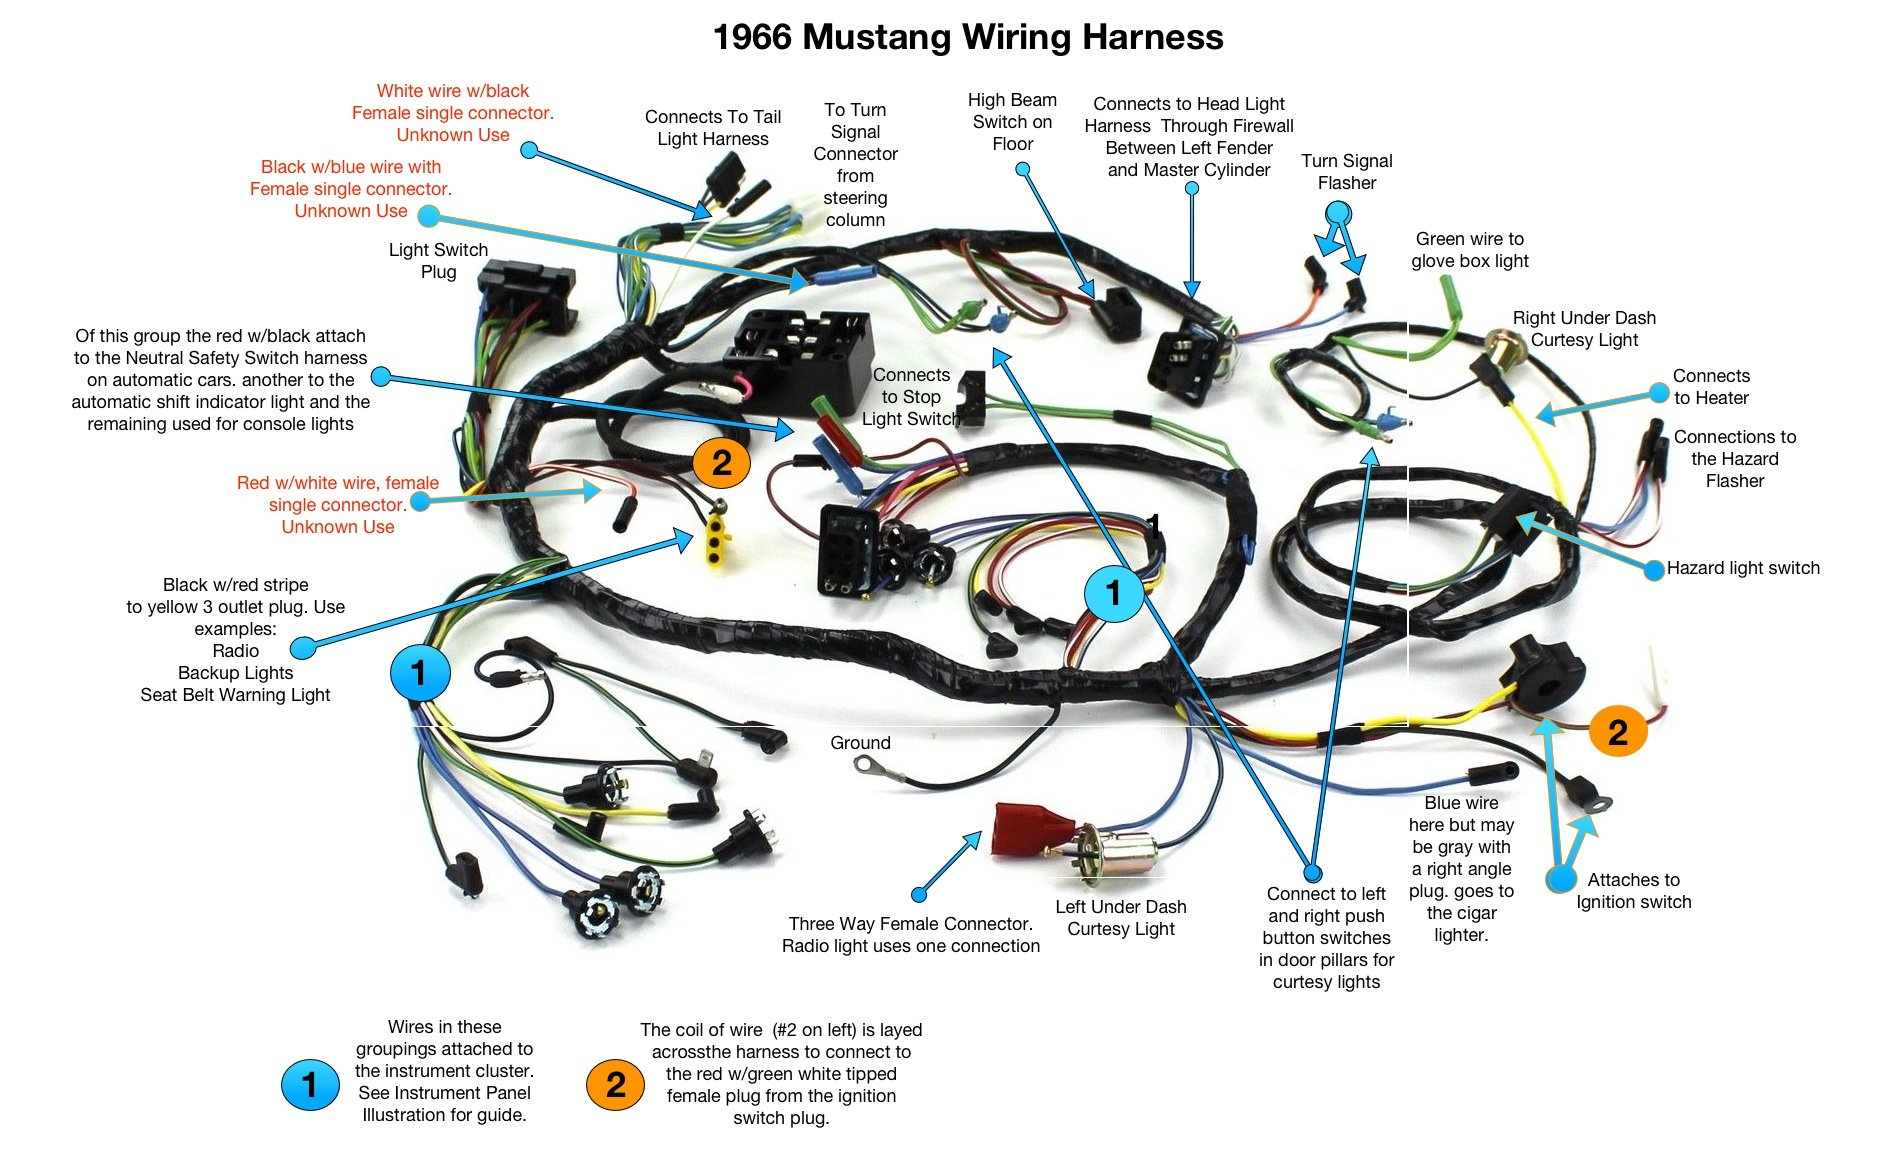 507585d1458686767 66 wiring harness diagram 66 mustang wiring harness 1966 mustang wiring harness on 1966 download wirning diagrams 2006 mustang wiring diagram at bakdesigns.co